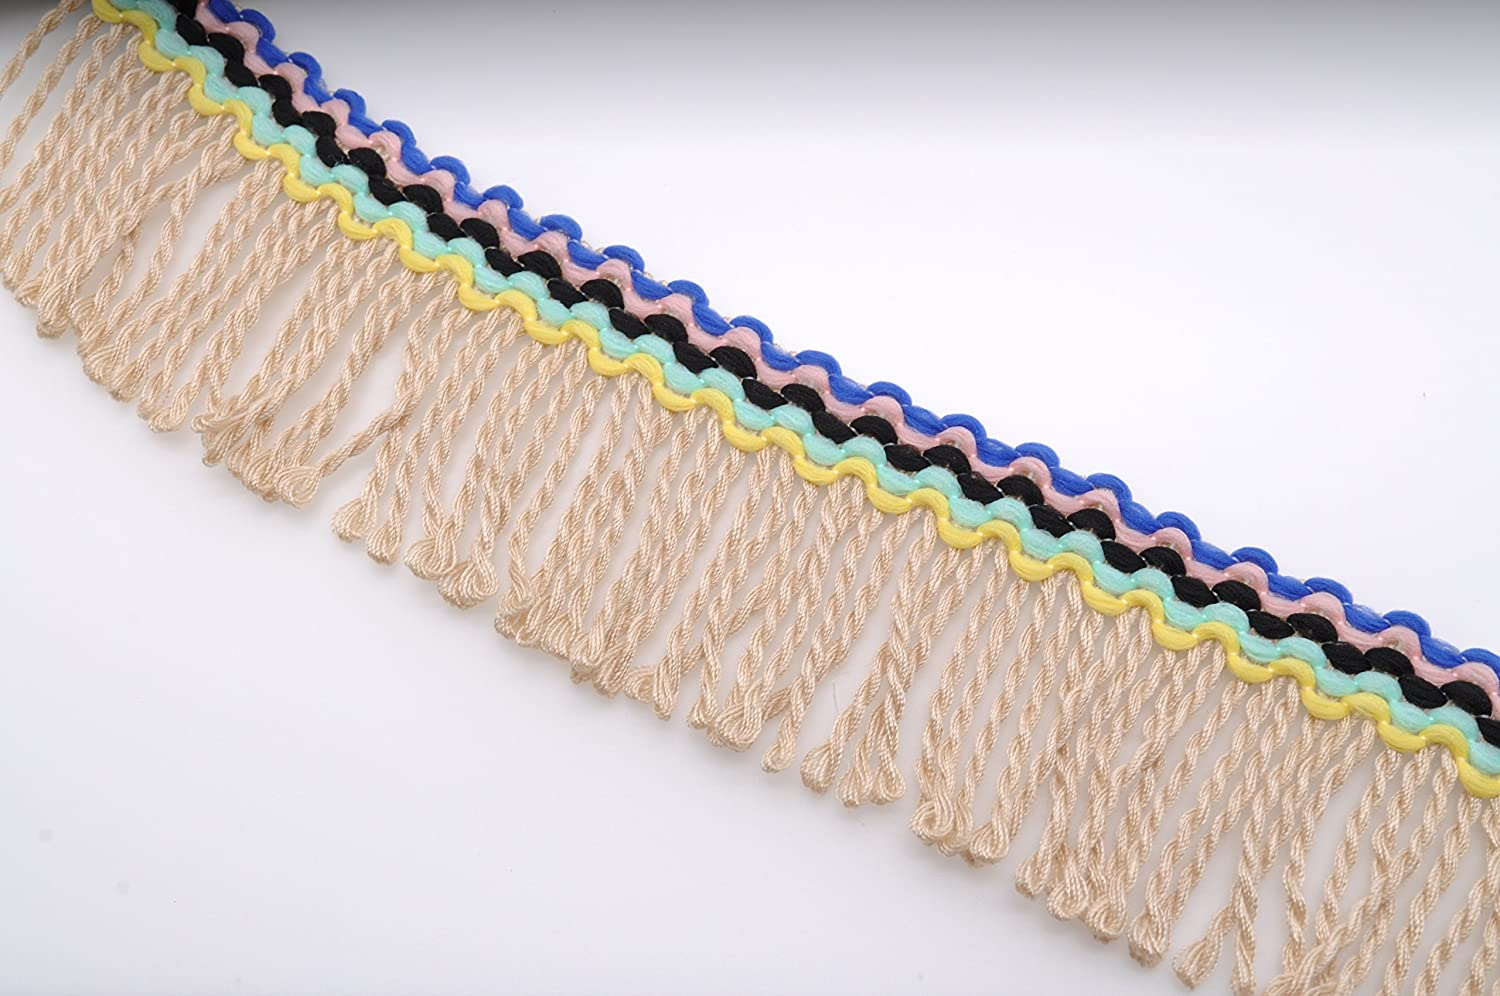 Marsha Q 5.5cm Wide Multicolor Tassel Fringe Trim Rayon Yarn Lace Ribbon 5 Yard for Sewing Crafts Apparel Design Upholstery Couture and Most Decoration Projects